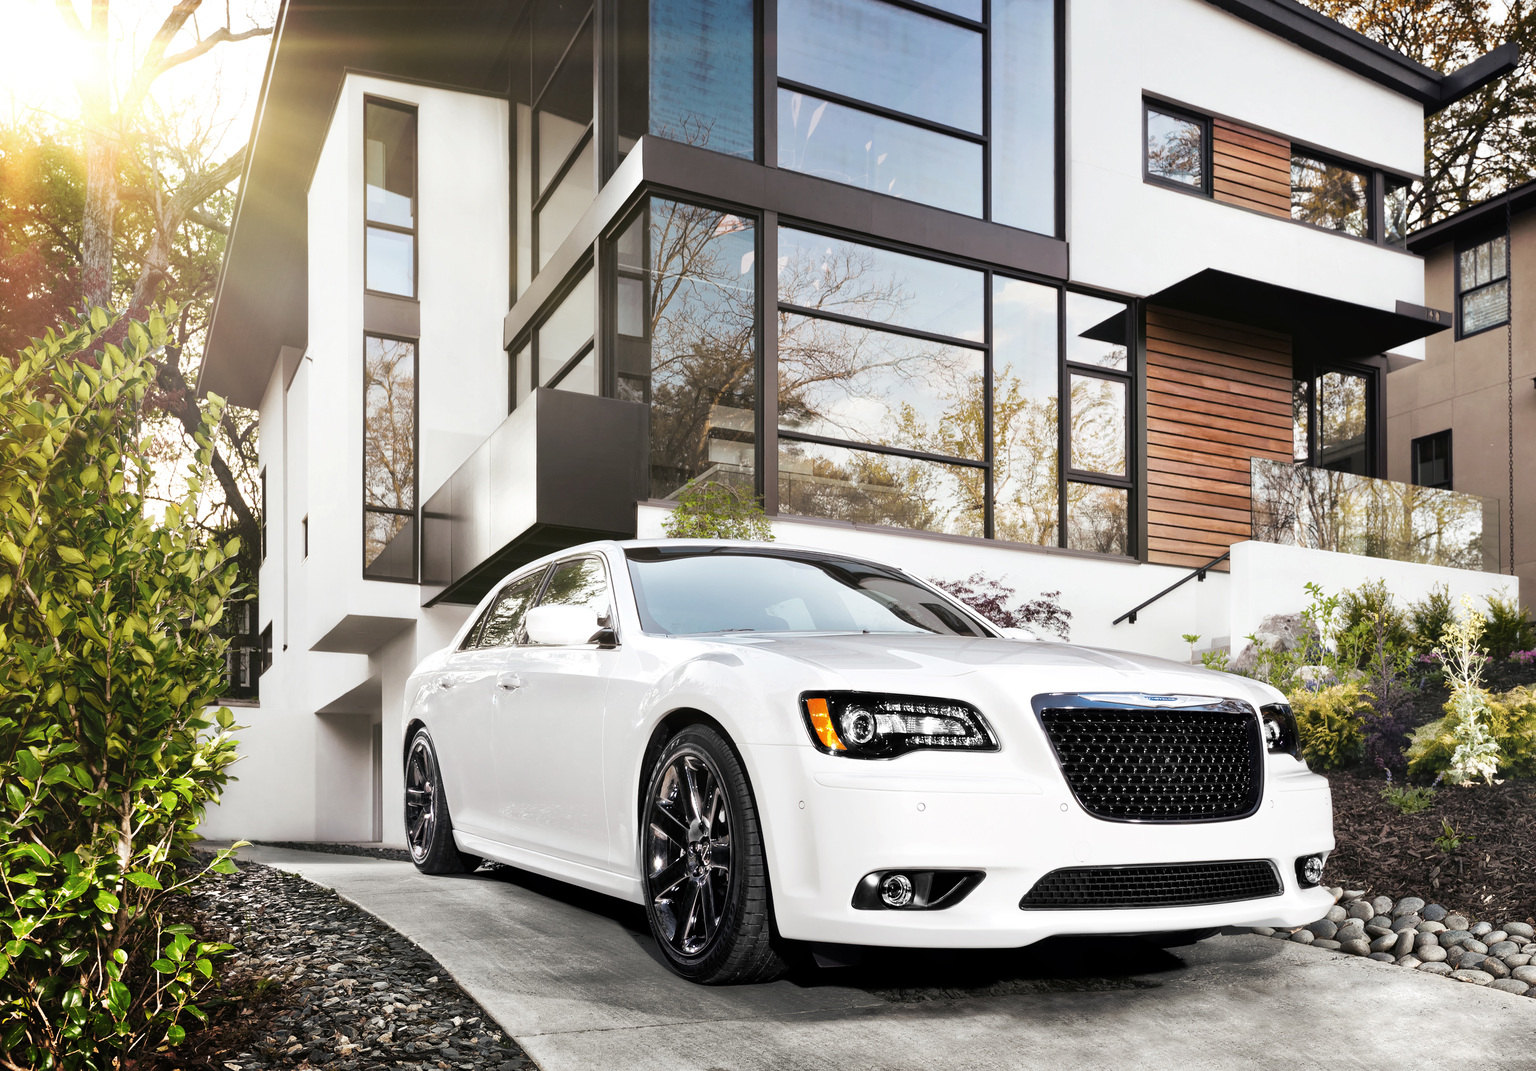 pictures models sedan srt sale amcarguide html com core s oem prices chrysler rq for specifications